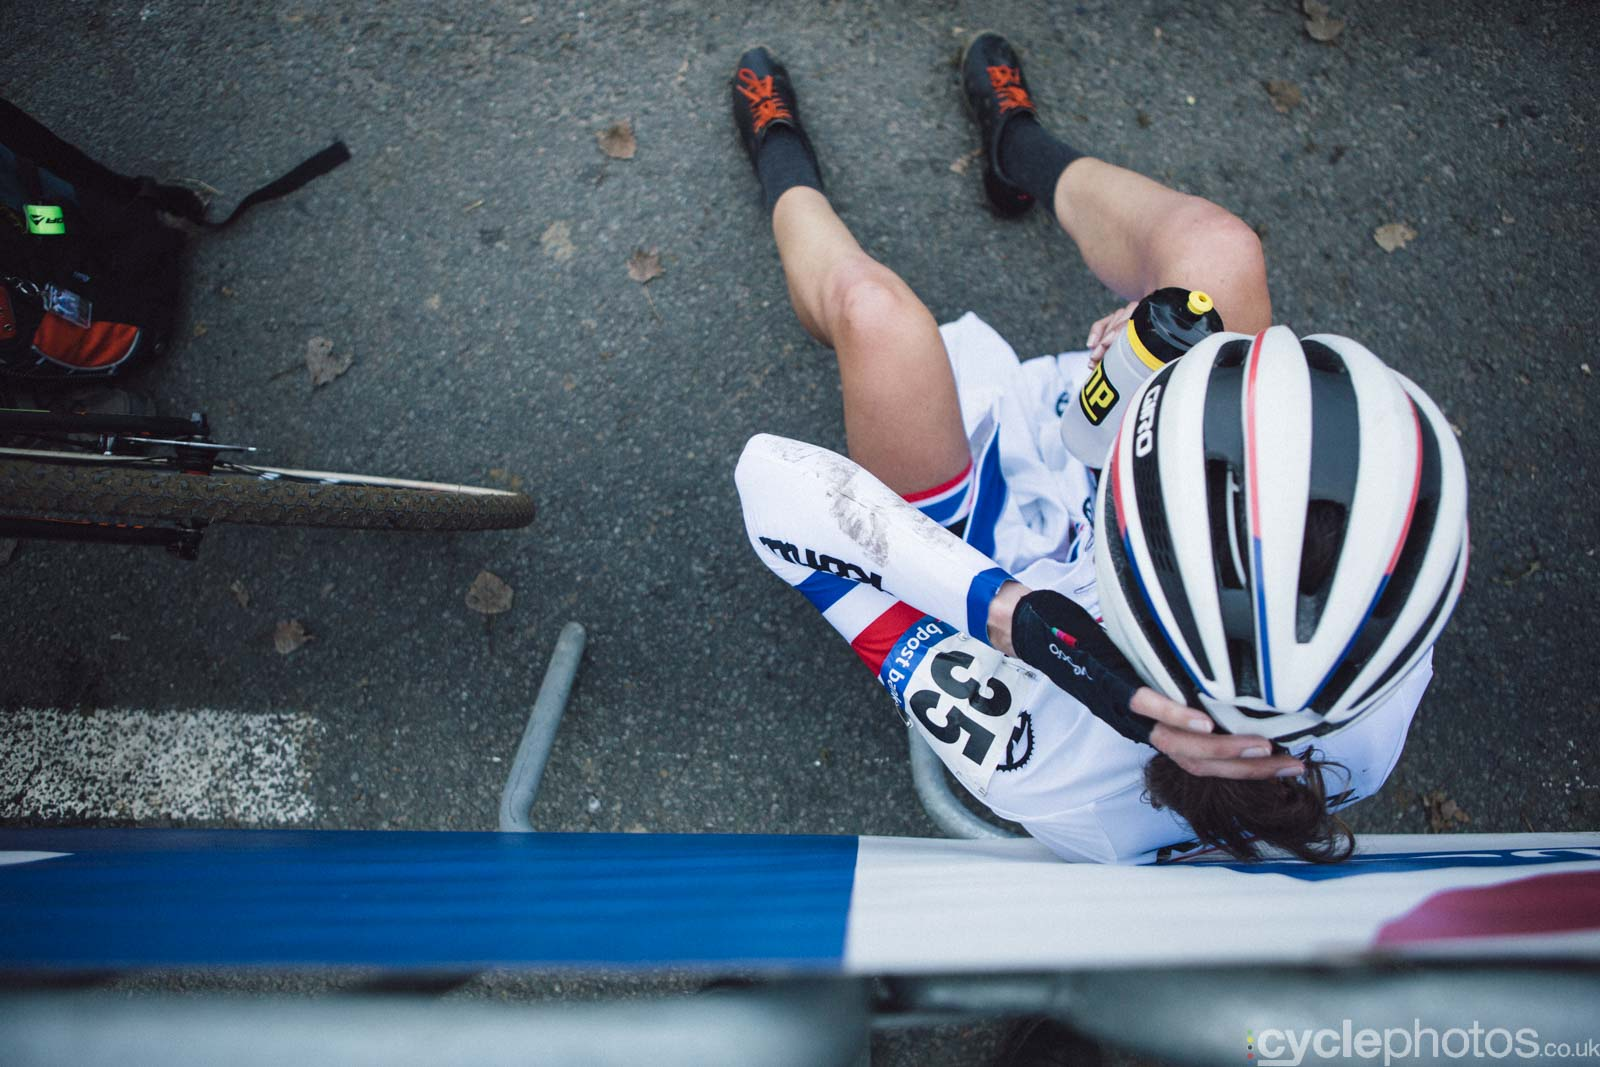 2015-cyclephotos-cyclocross-ronse-143446-helen-wyman